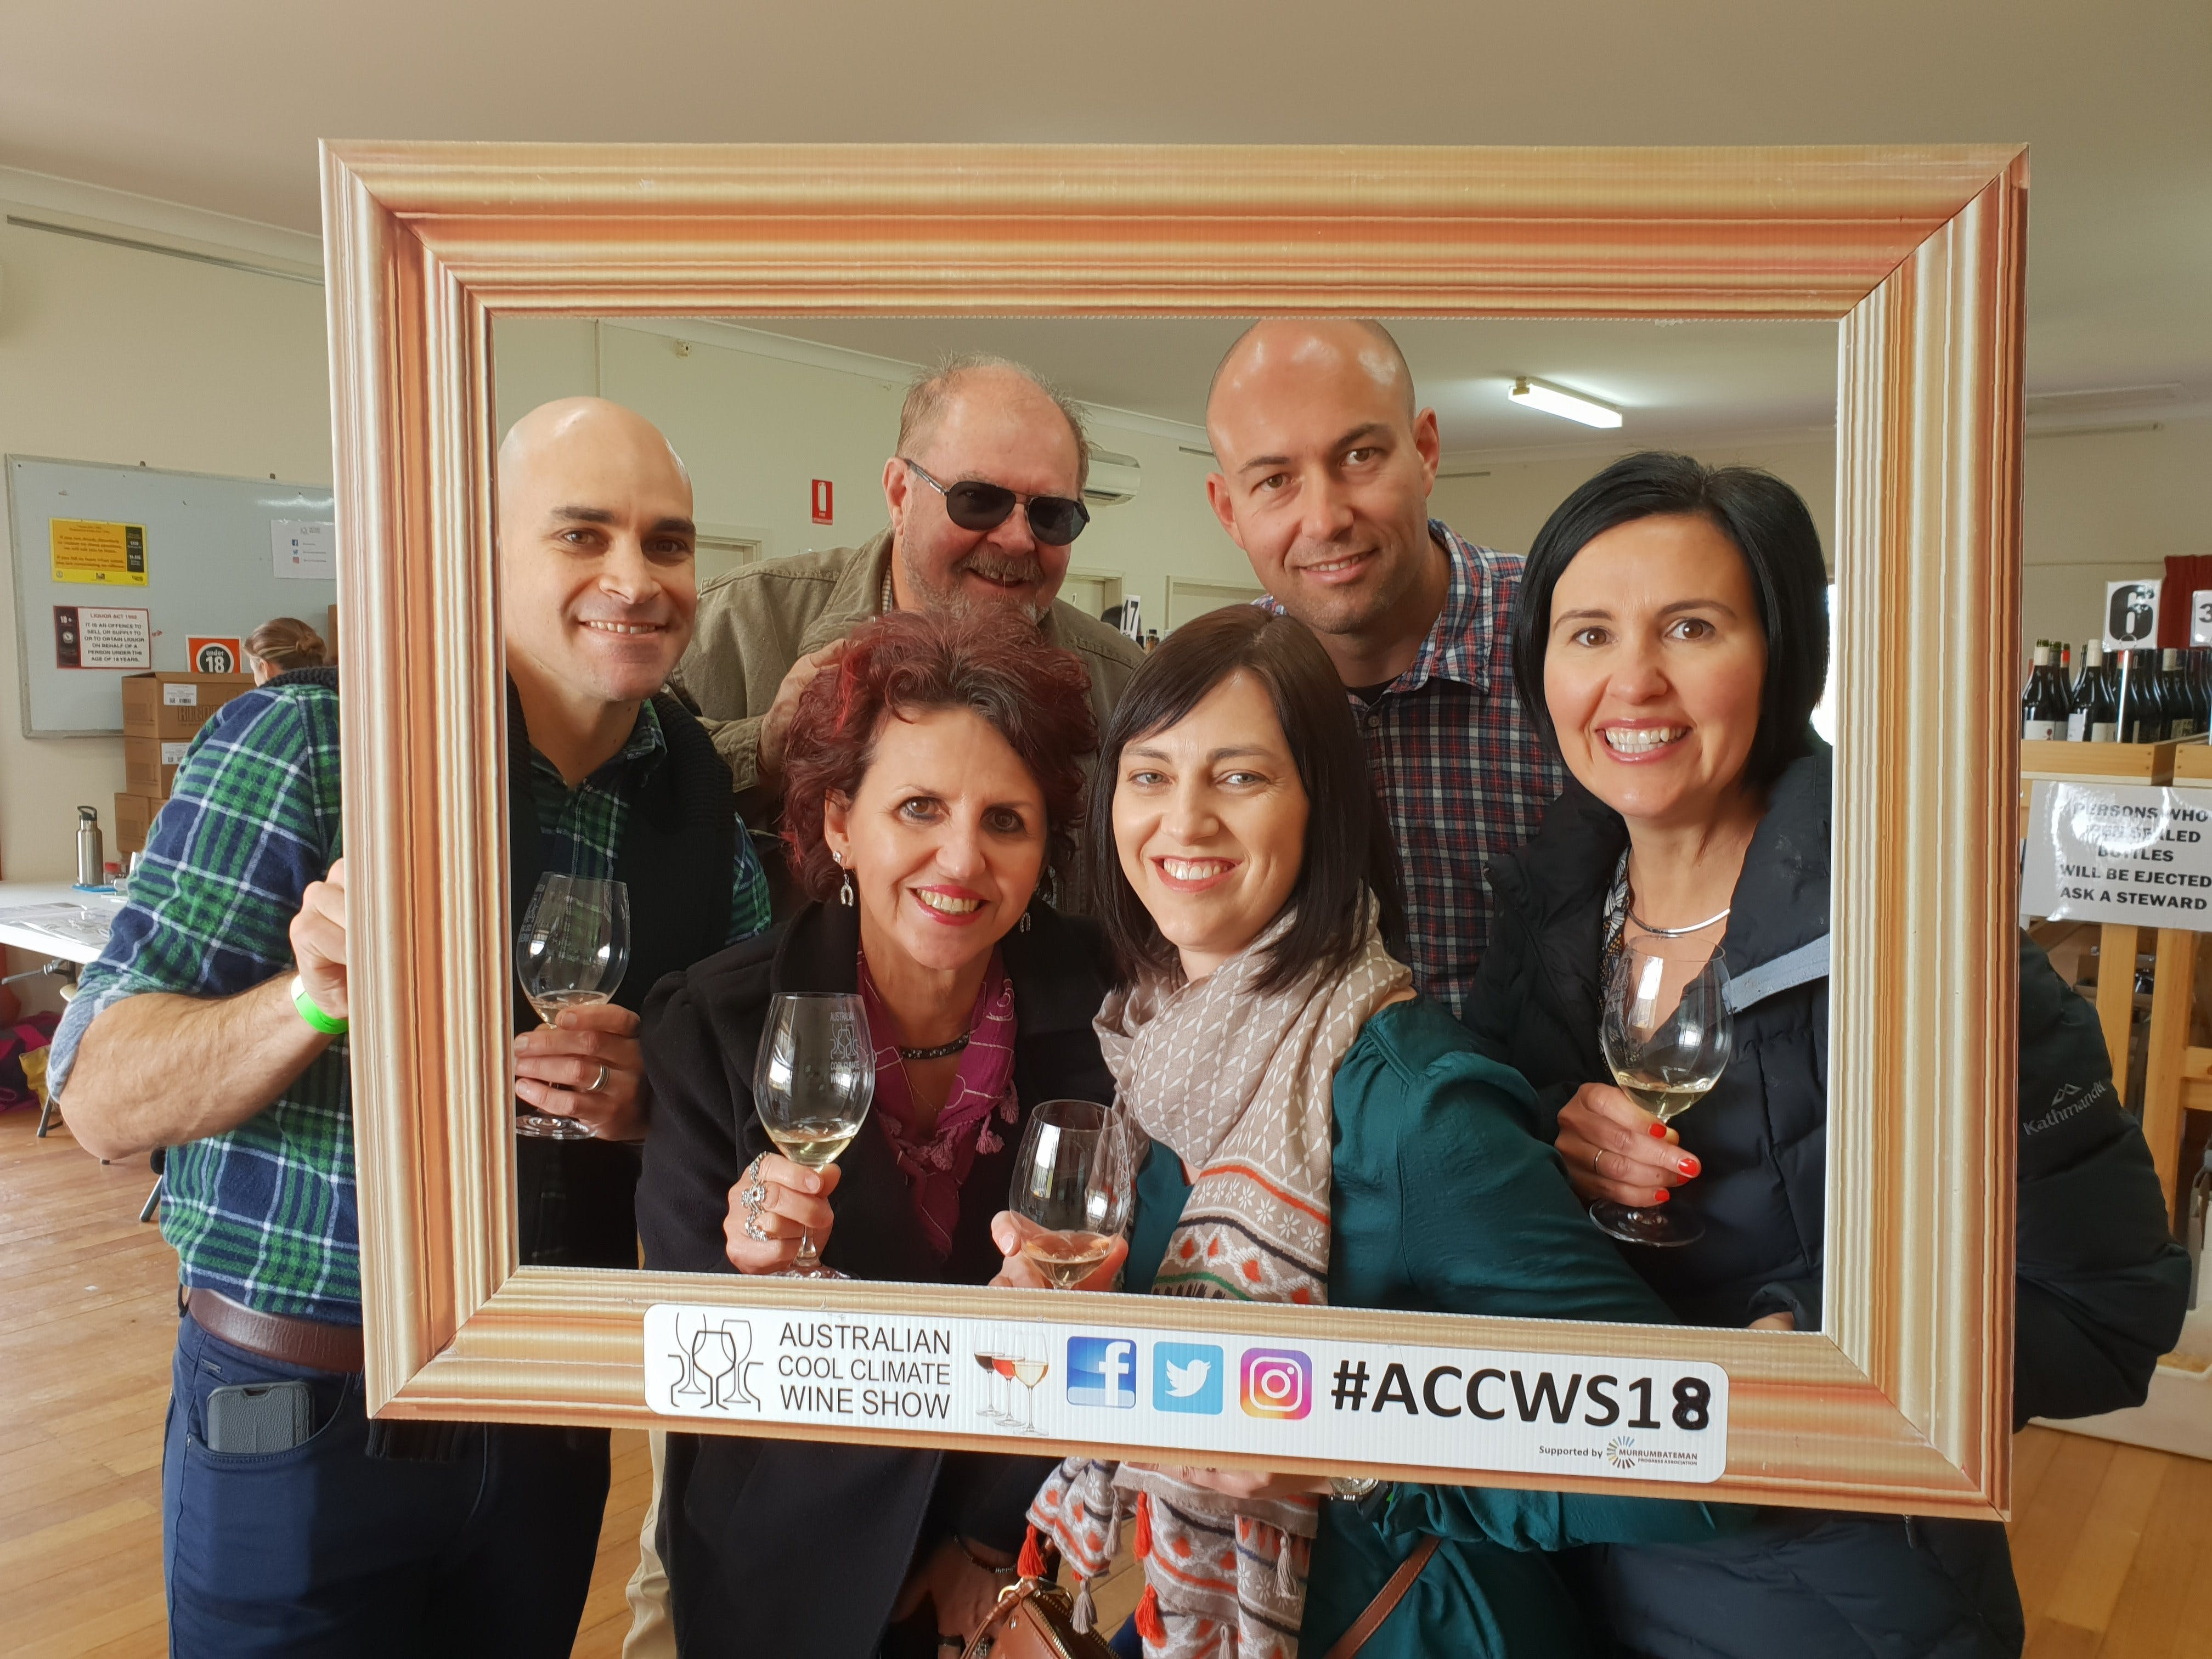 Australian Cool Climate Wine Show - WA Accommodation